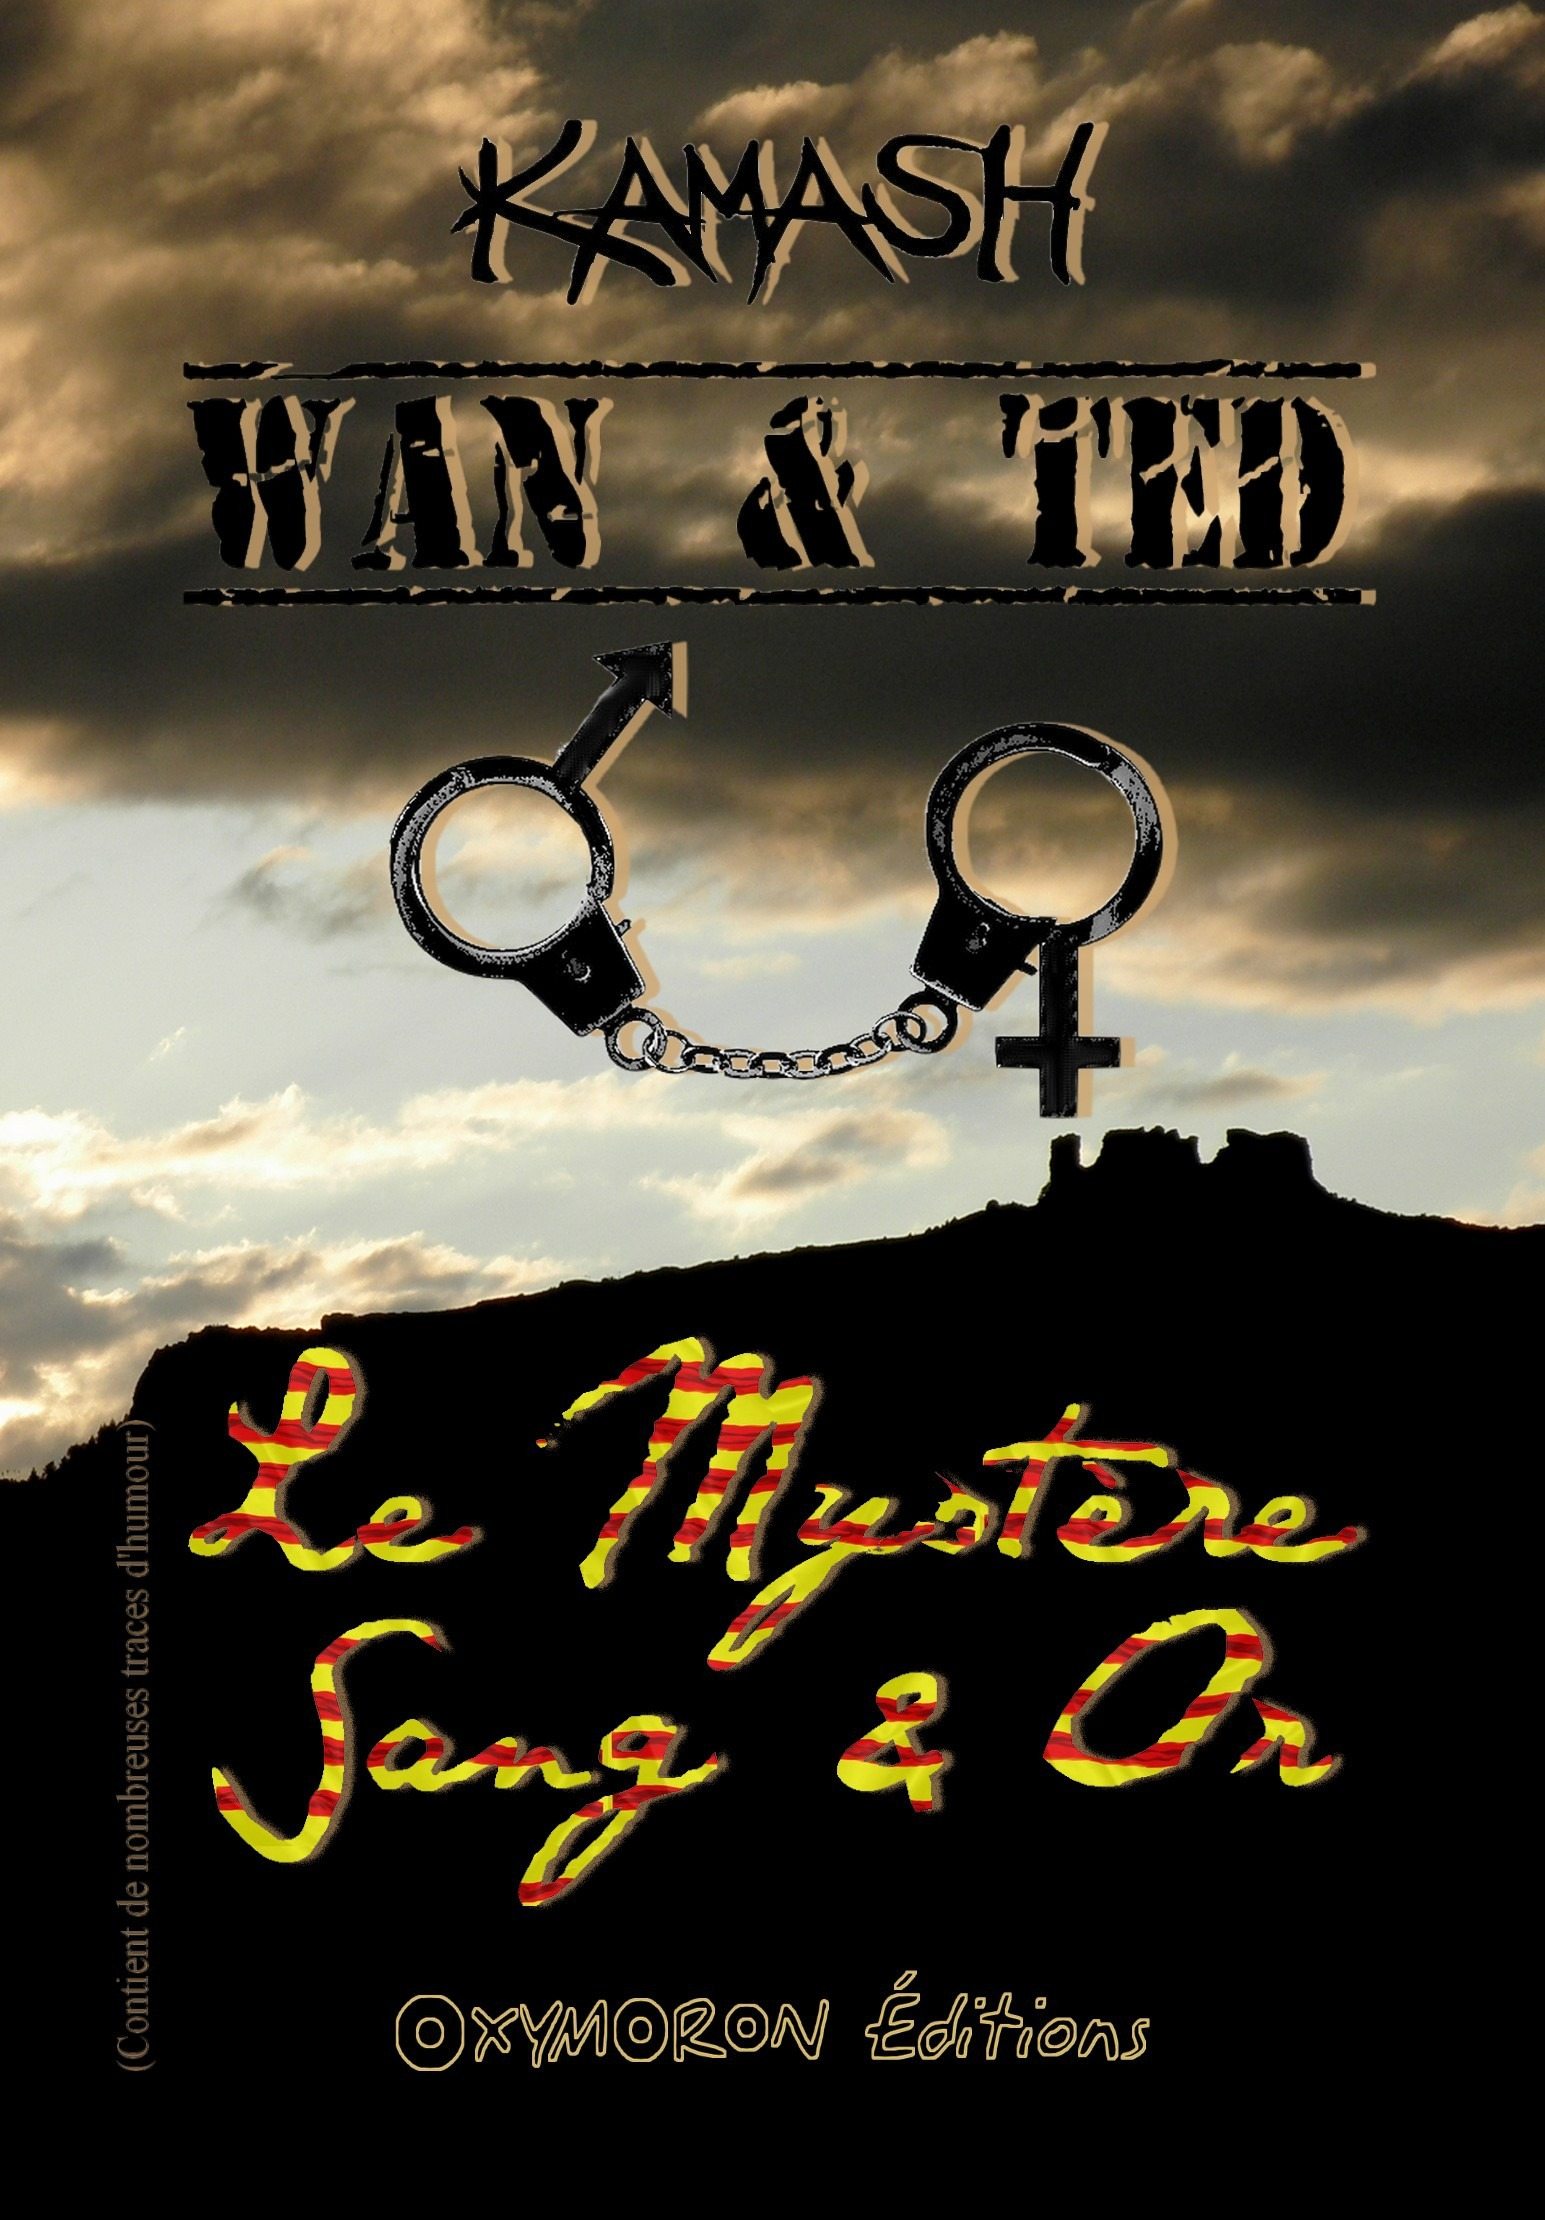 Wan & Ted ; le mystère sang & or